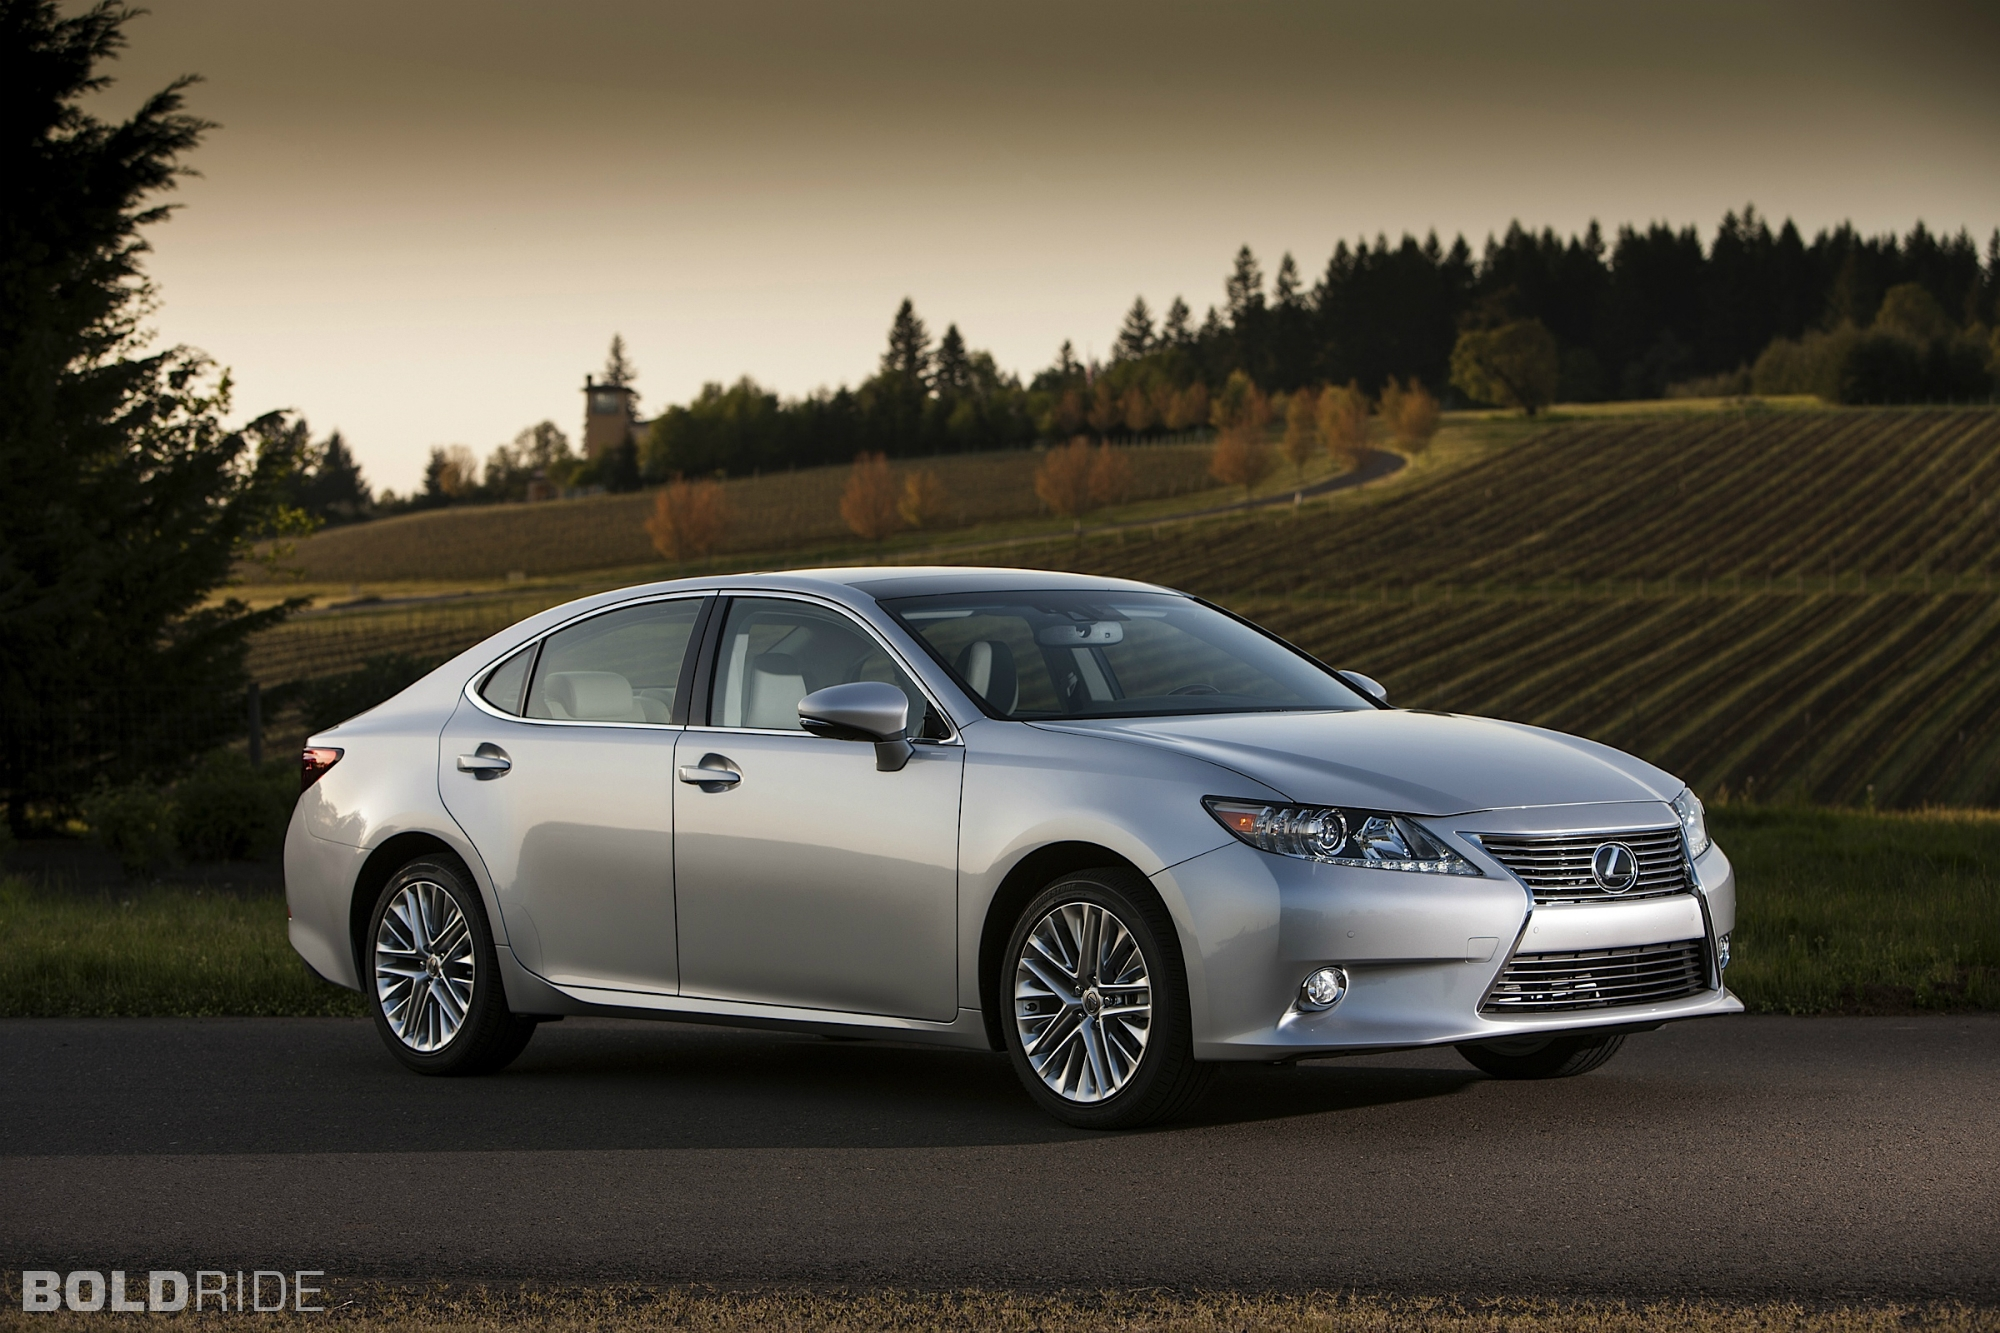 lexus wallpaper es image post